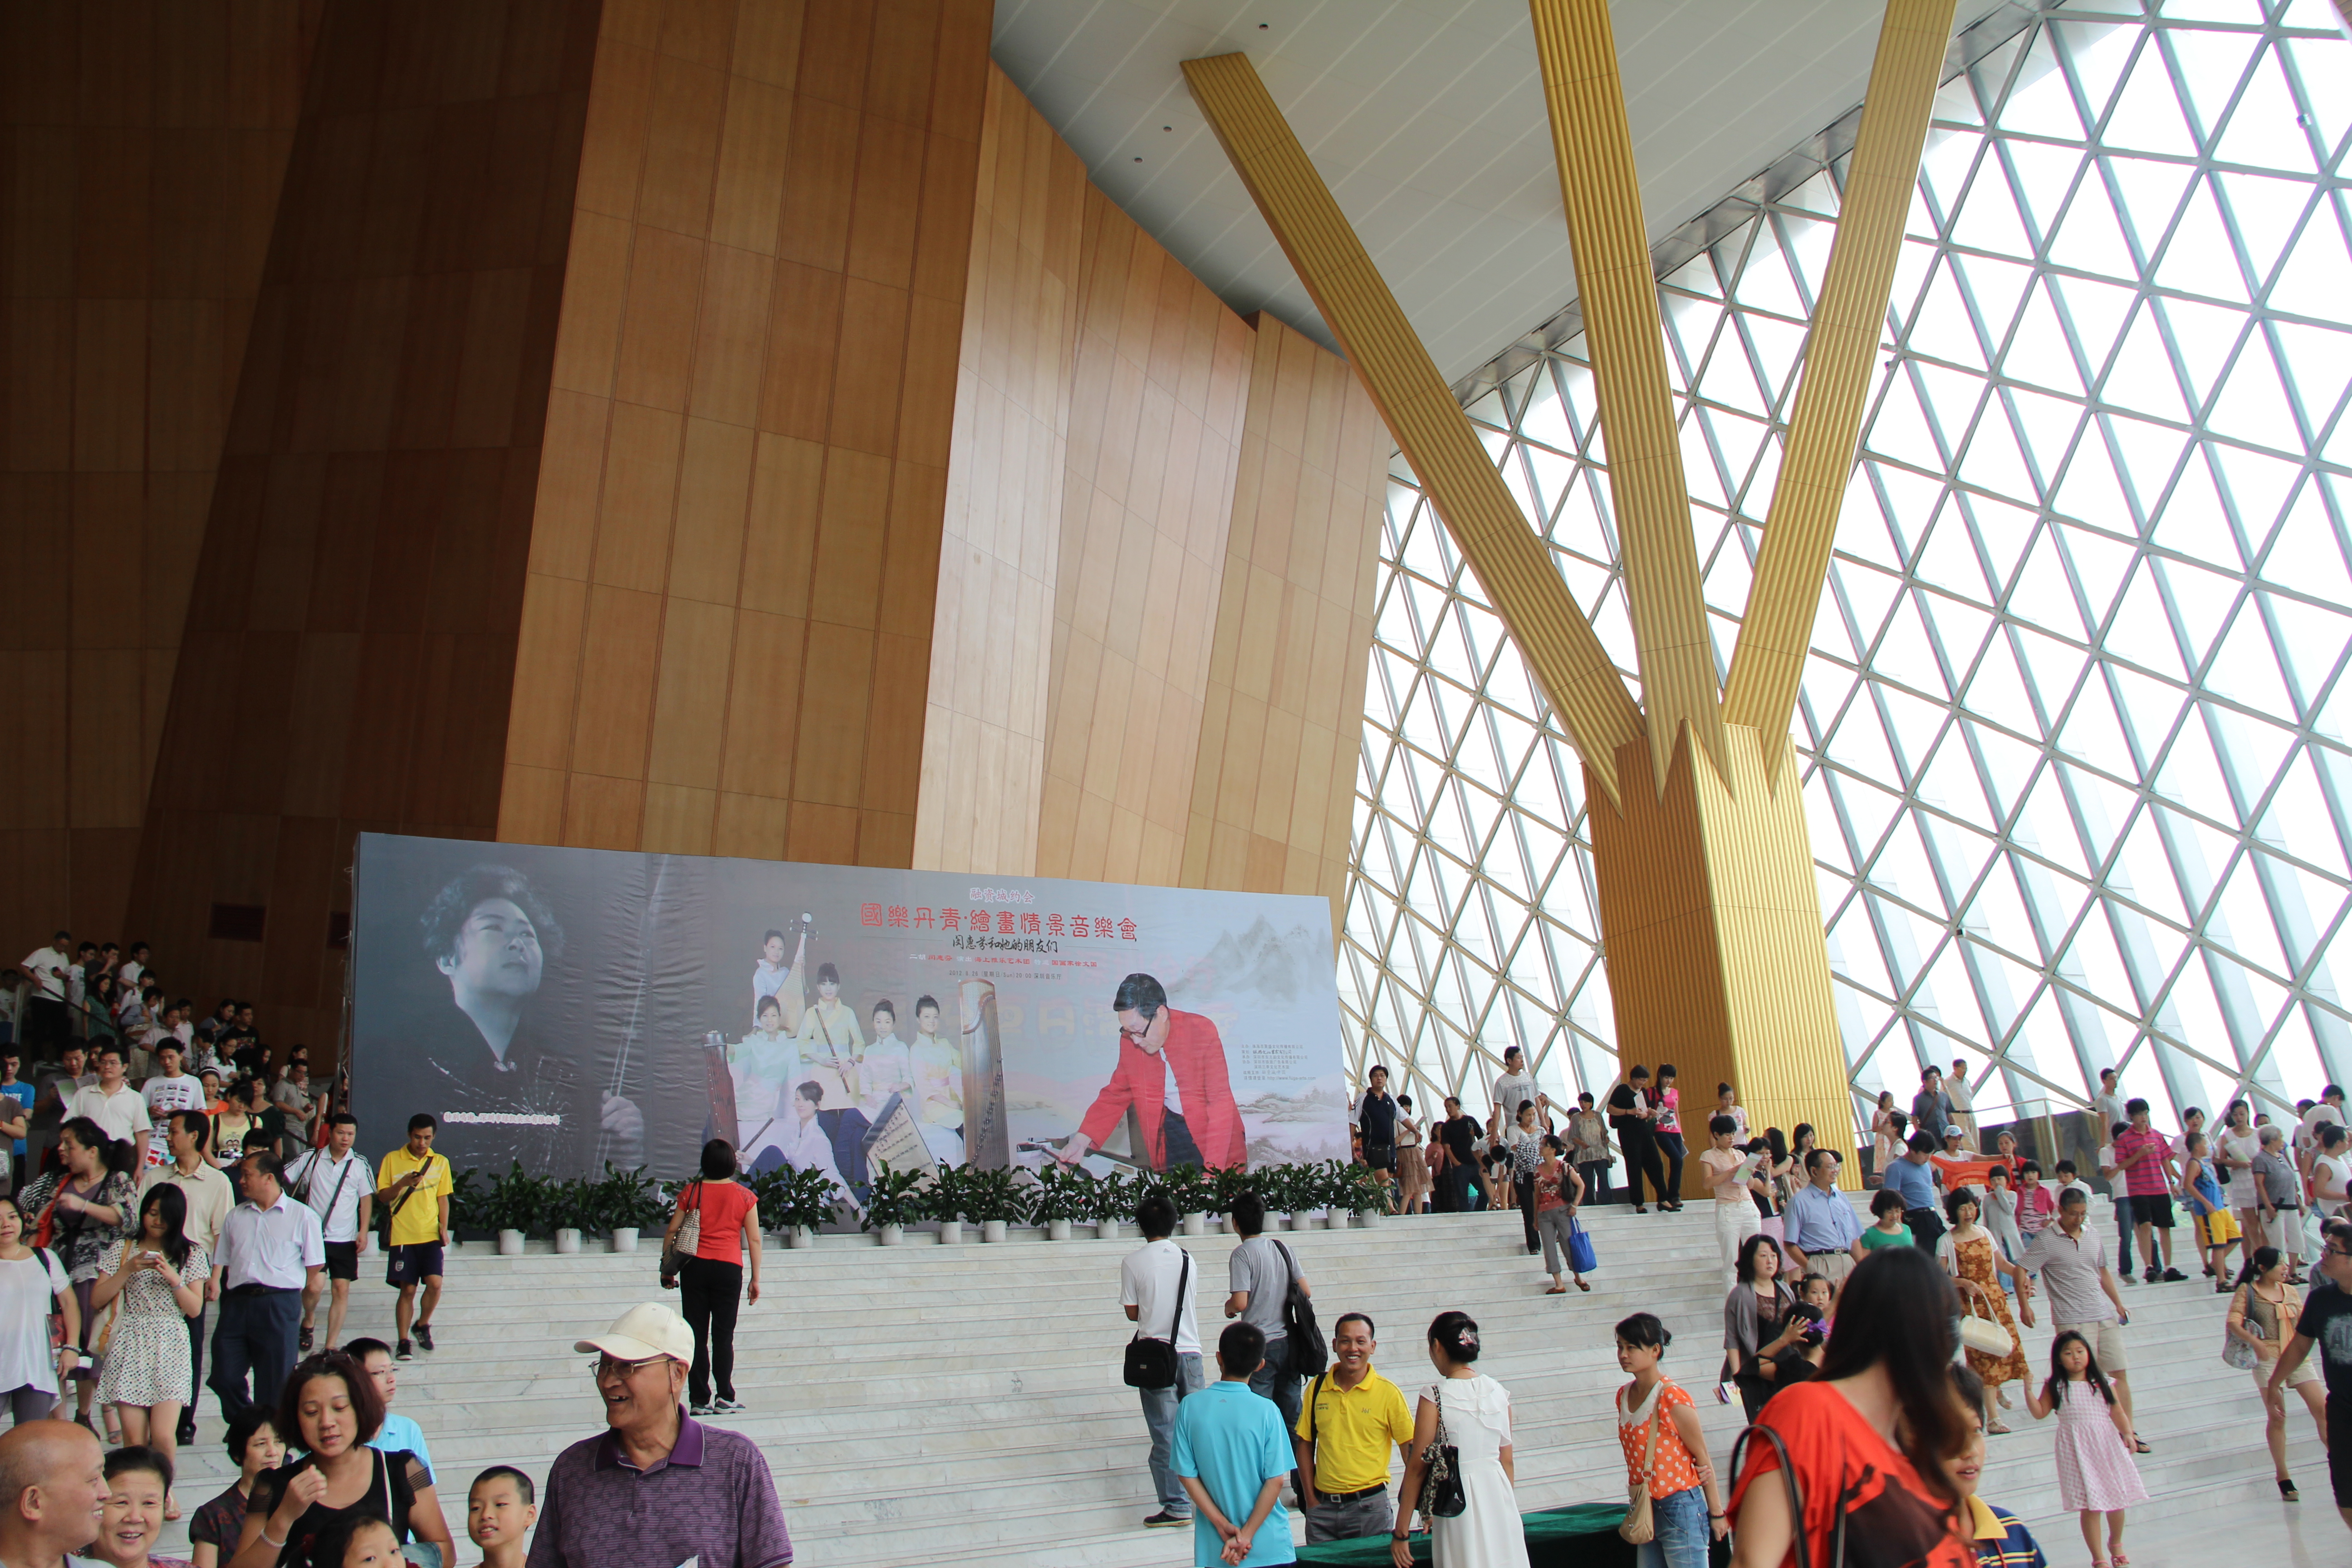 Shenzhen: culture on the rise